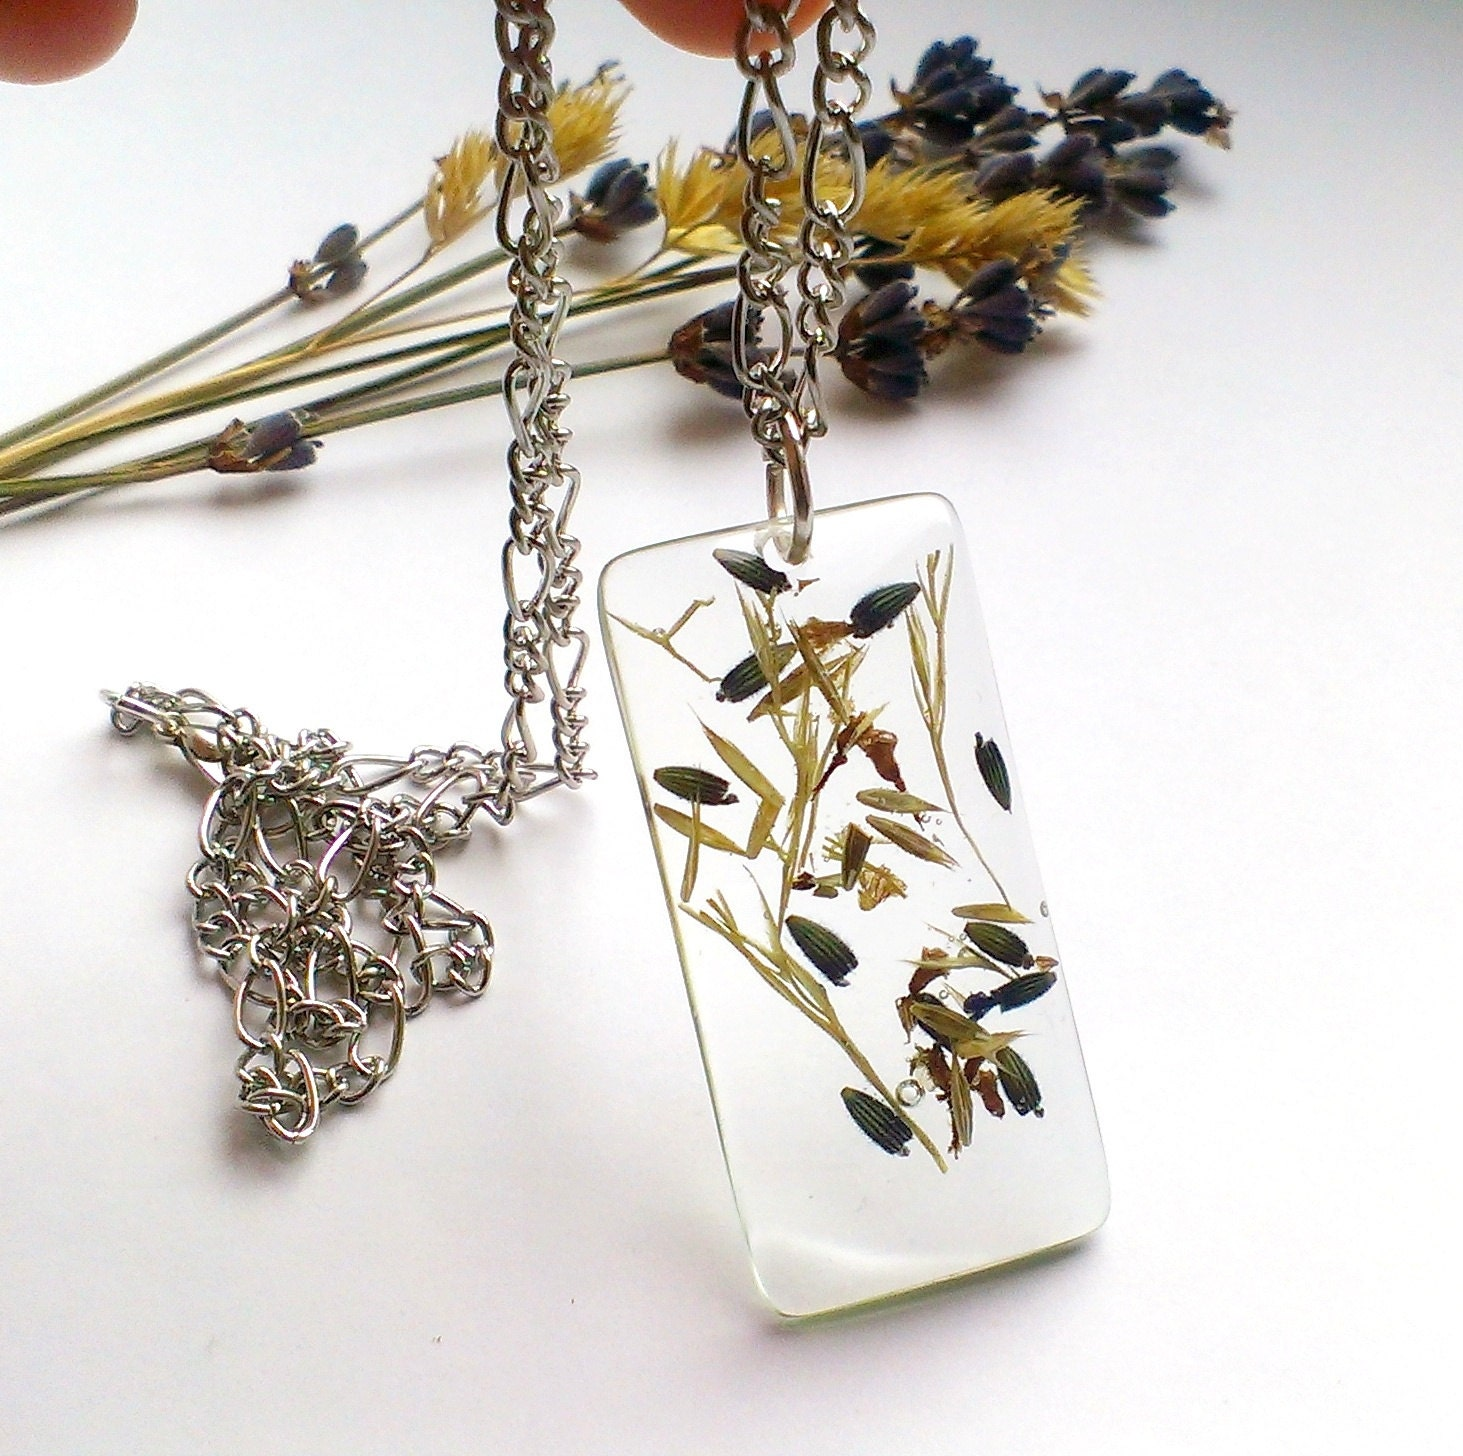 Flower pendant Resin necklace Real flower jewelry Resin by Galiga